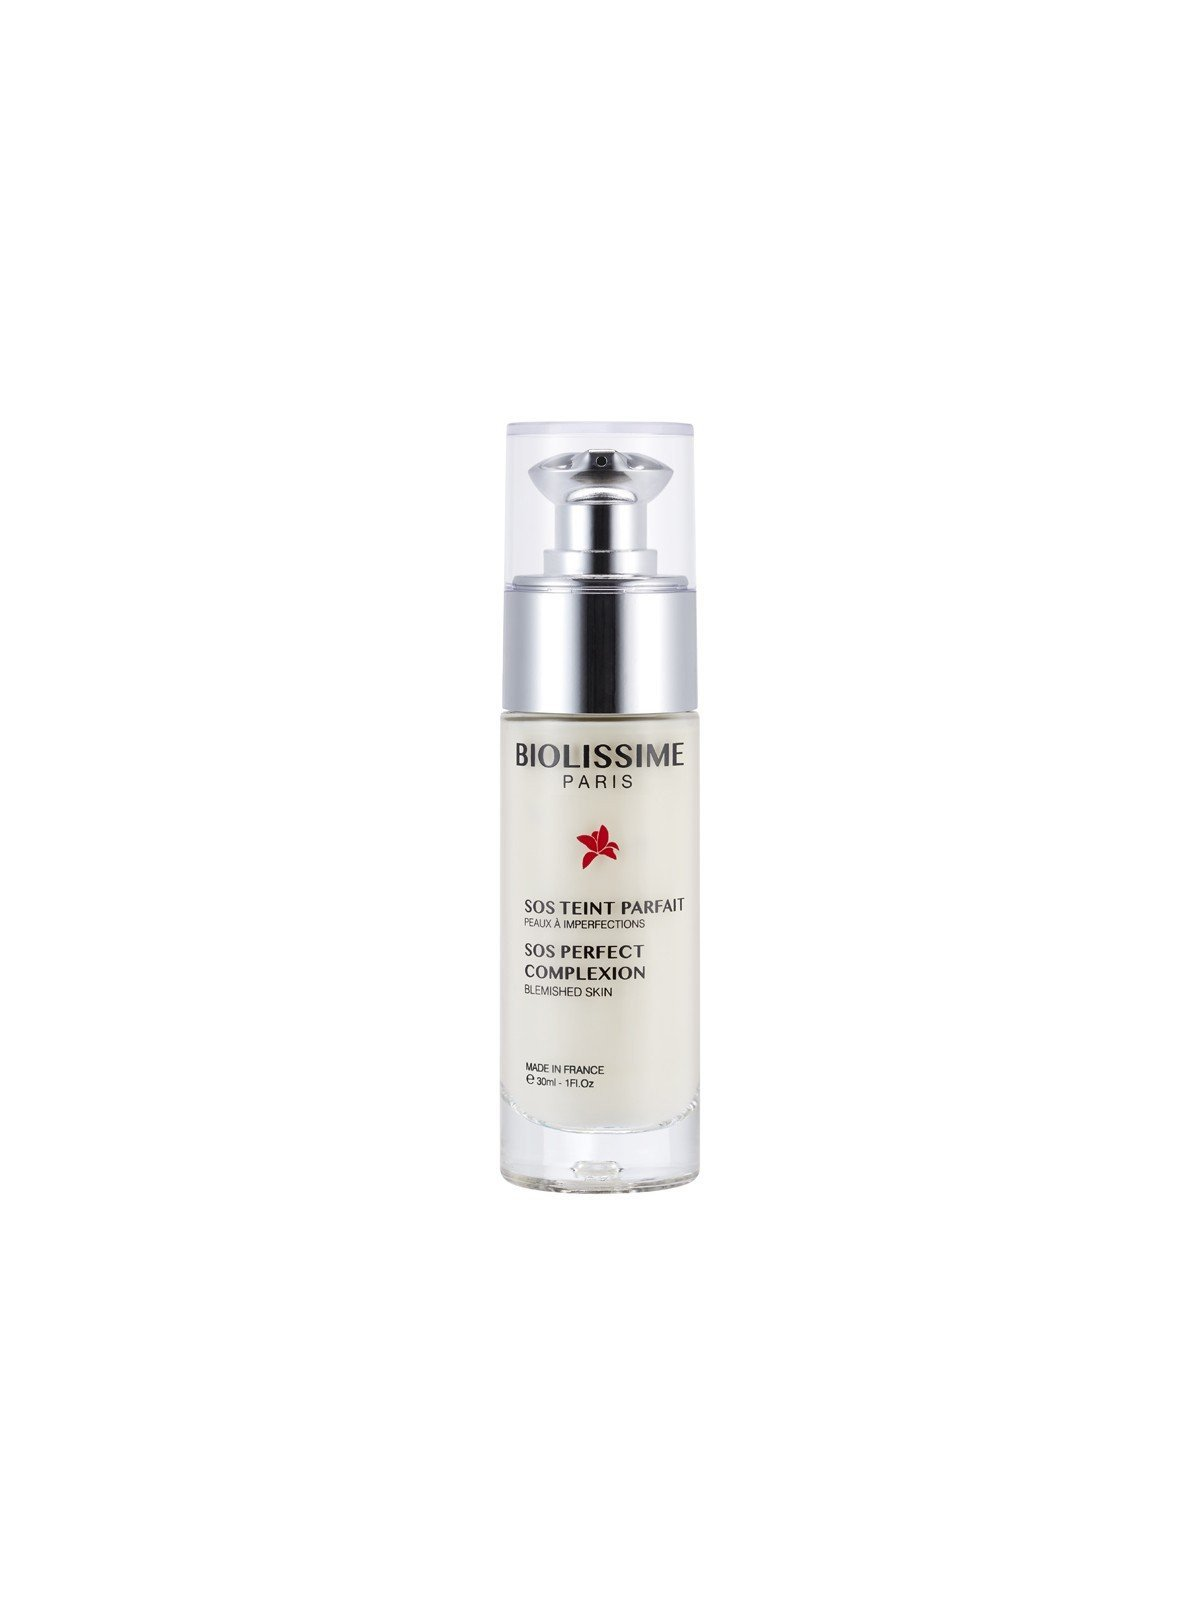 SOS Perfect Complexion - 30ml Serum Biolissime